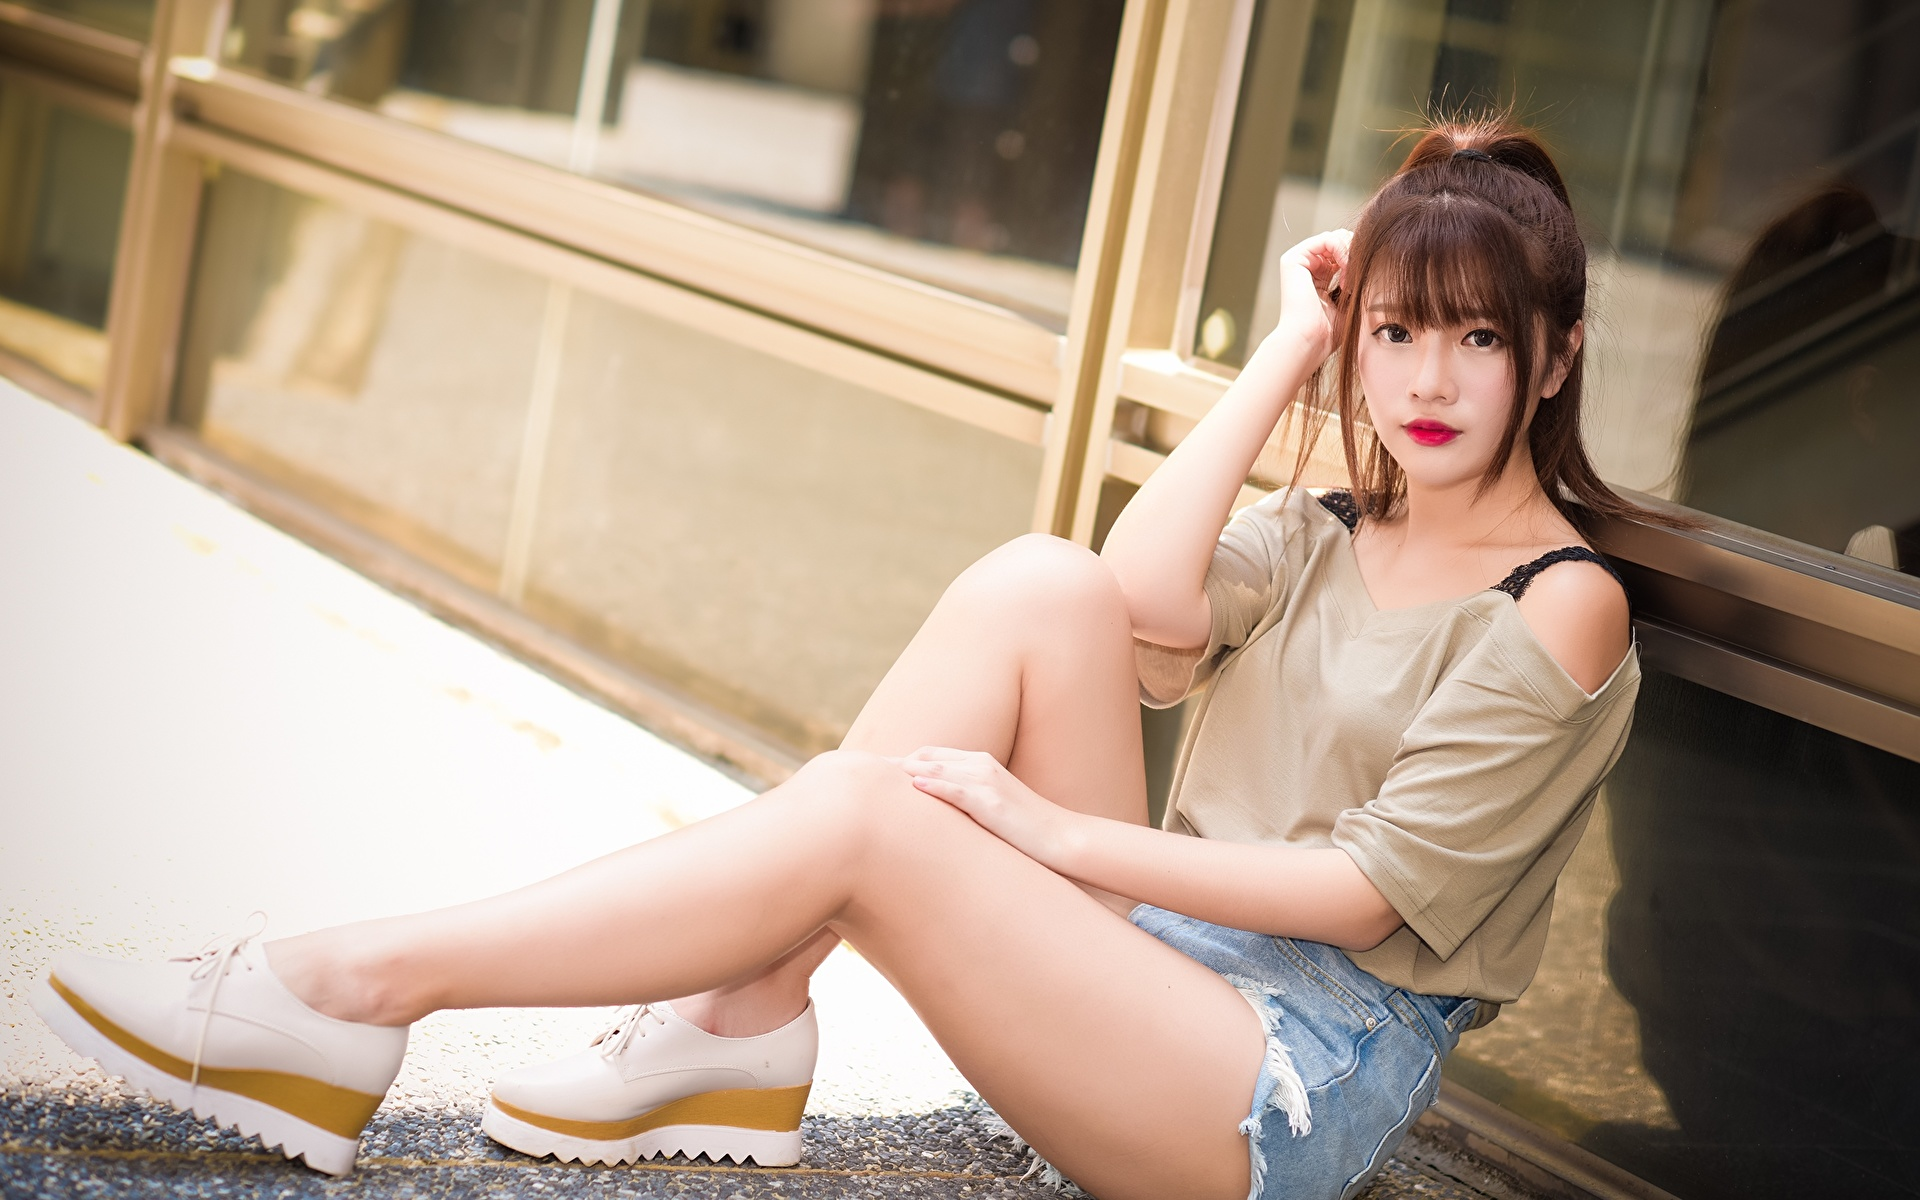 Photos Brown haired Girls Legs Asiatic Hands Shorts Sitting Stilettos 1920x1200 female young woman Asian sit high heels